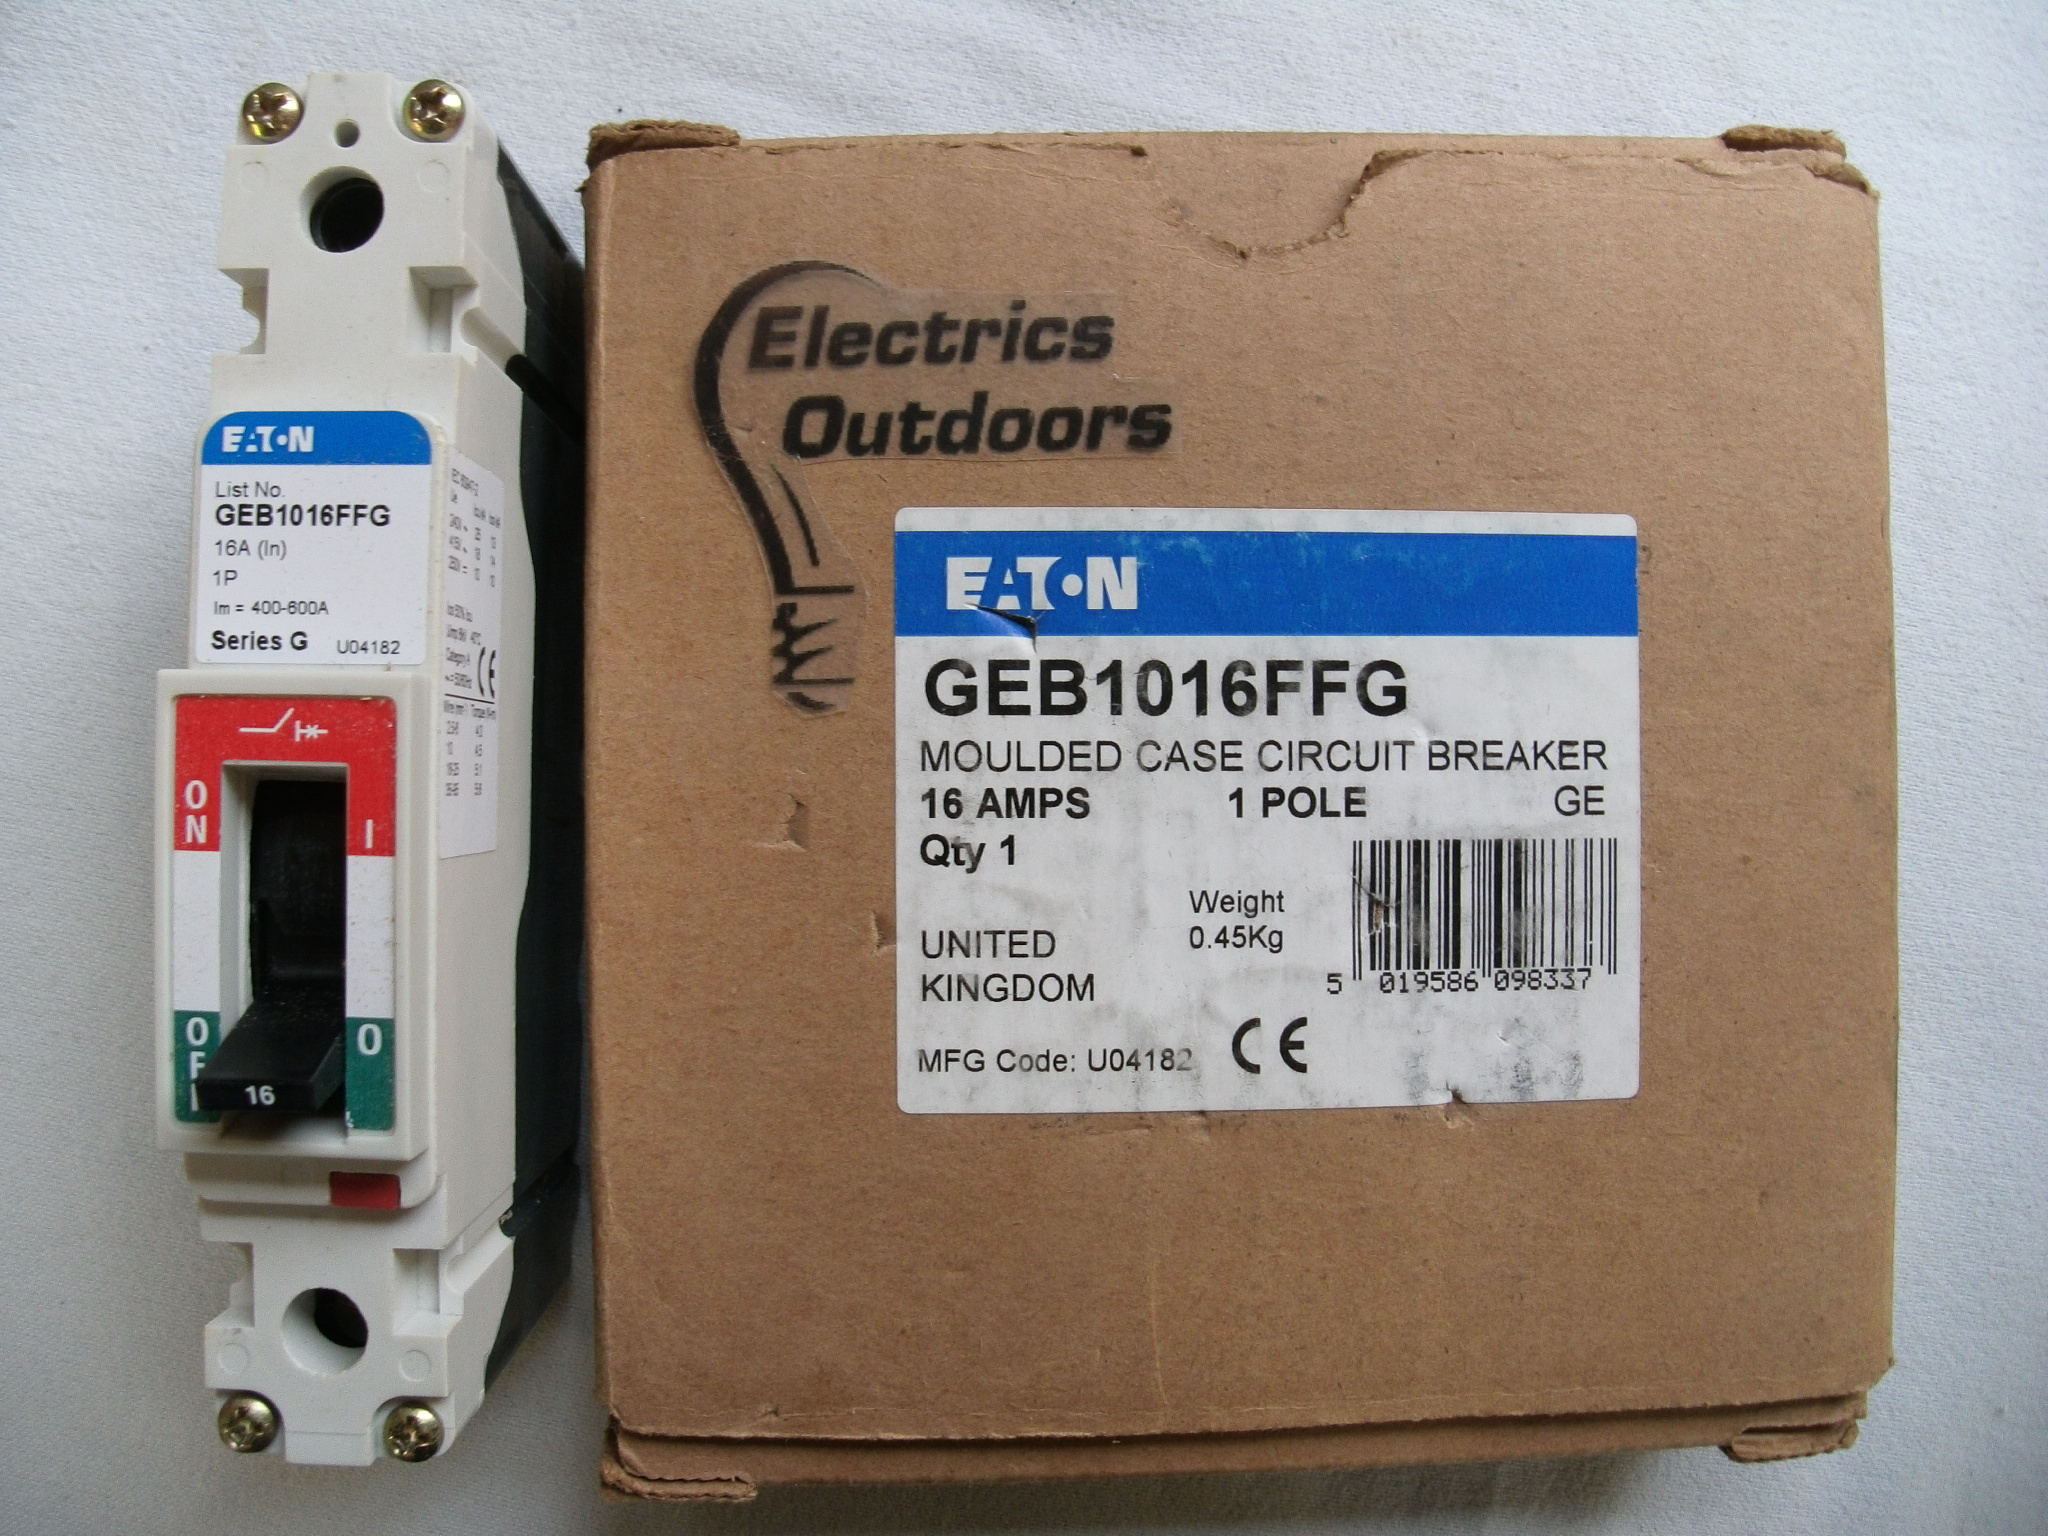 EATON 16 AMP 25 kA SERIES G MCCB SINGLE POLE 240V GEB1016FFG U04182 NO SCREWS